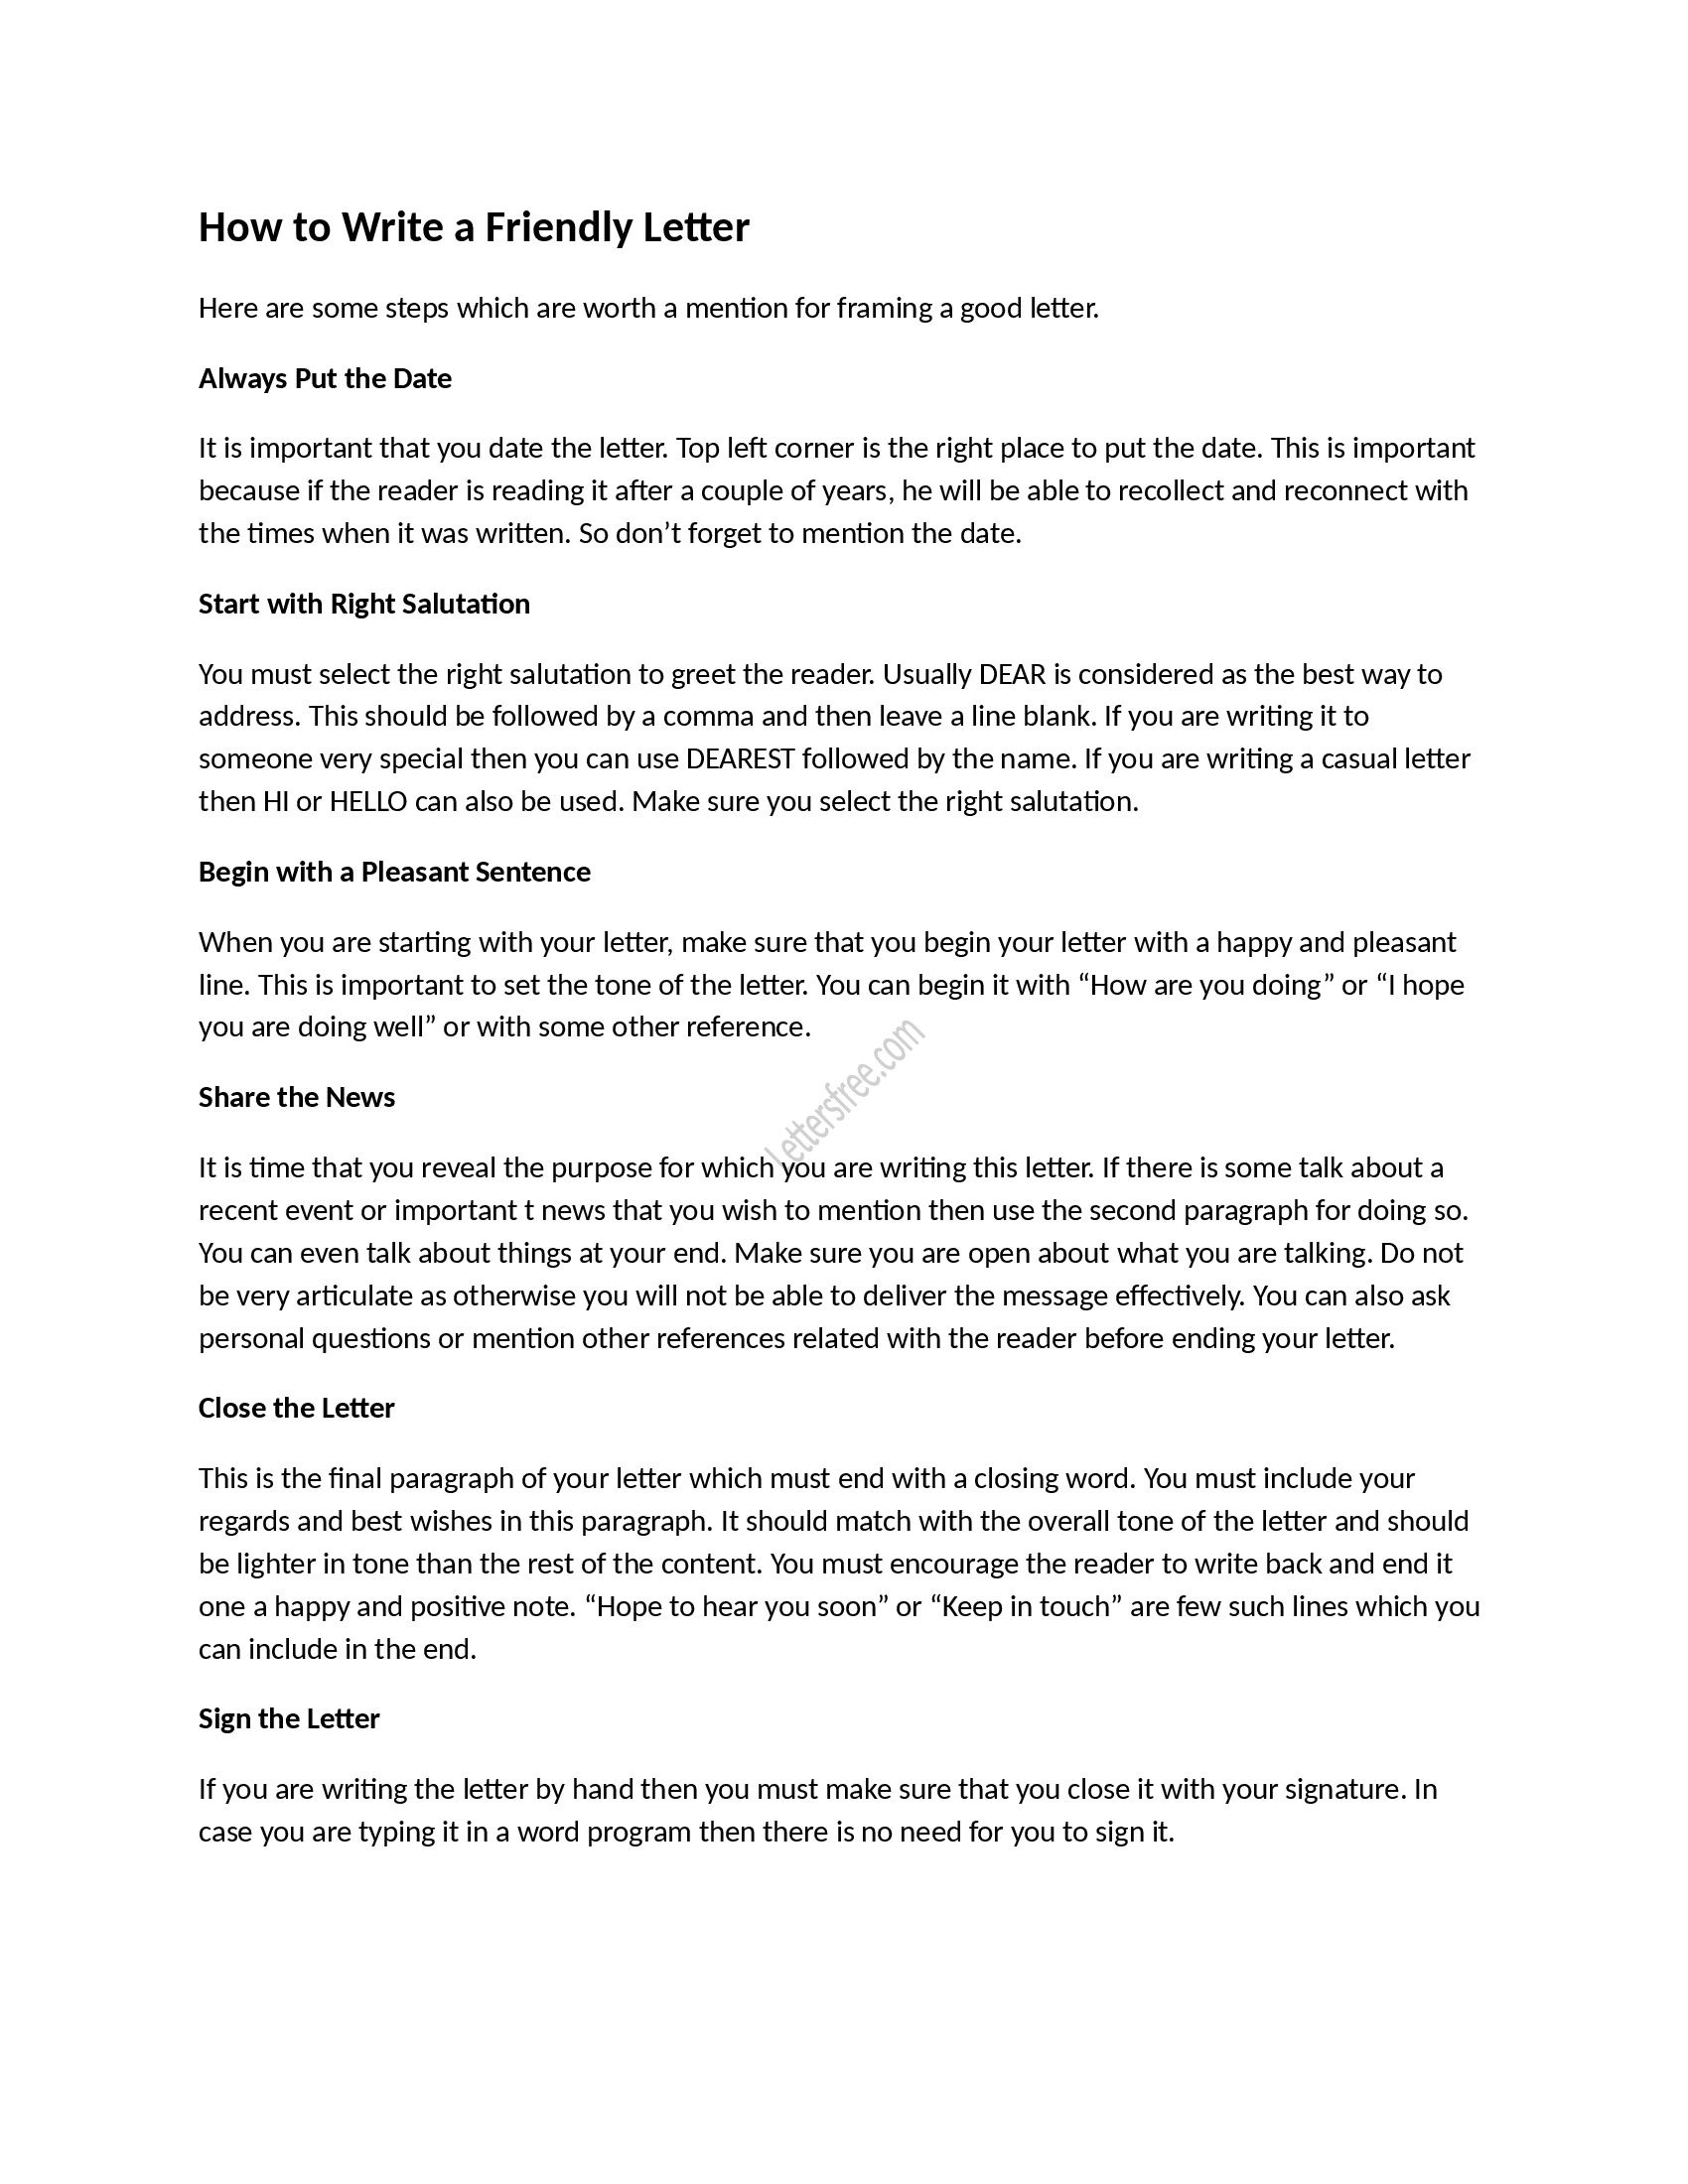 How to write a friendly letter with sample pinterest friendly letter how to write a good friendly letter sample friendly letter tips for writing a friendly letter for high school friendlyletter samplefriendlyletter thecheapjerseys Choice Image